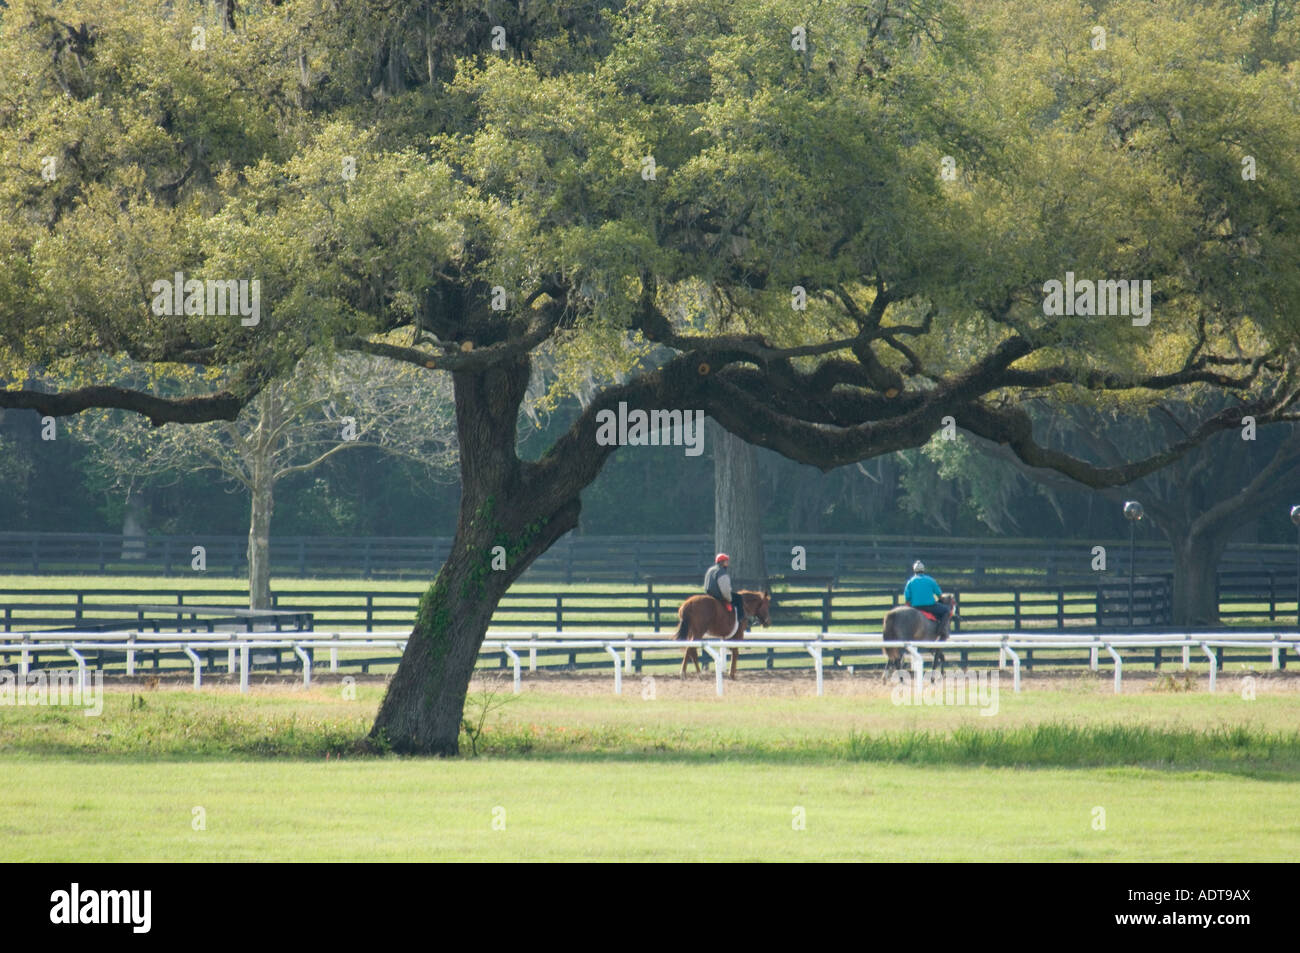 Exercise riders on Thorougbred two year olds in race training - Stock Image